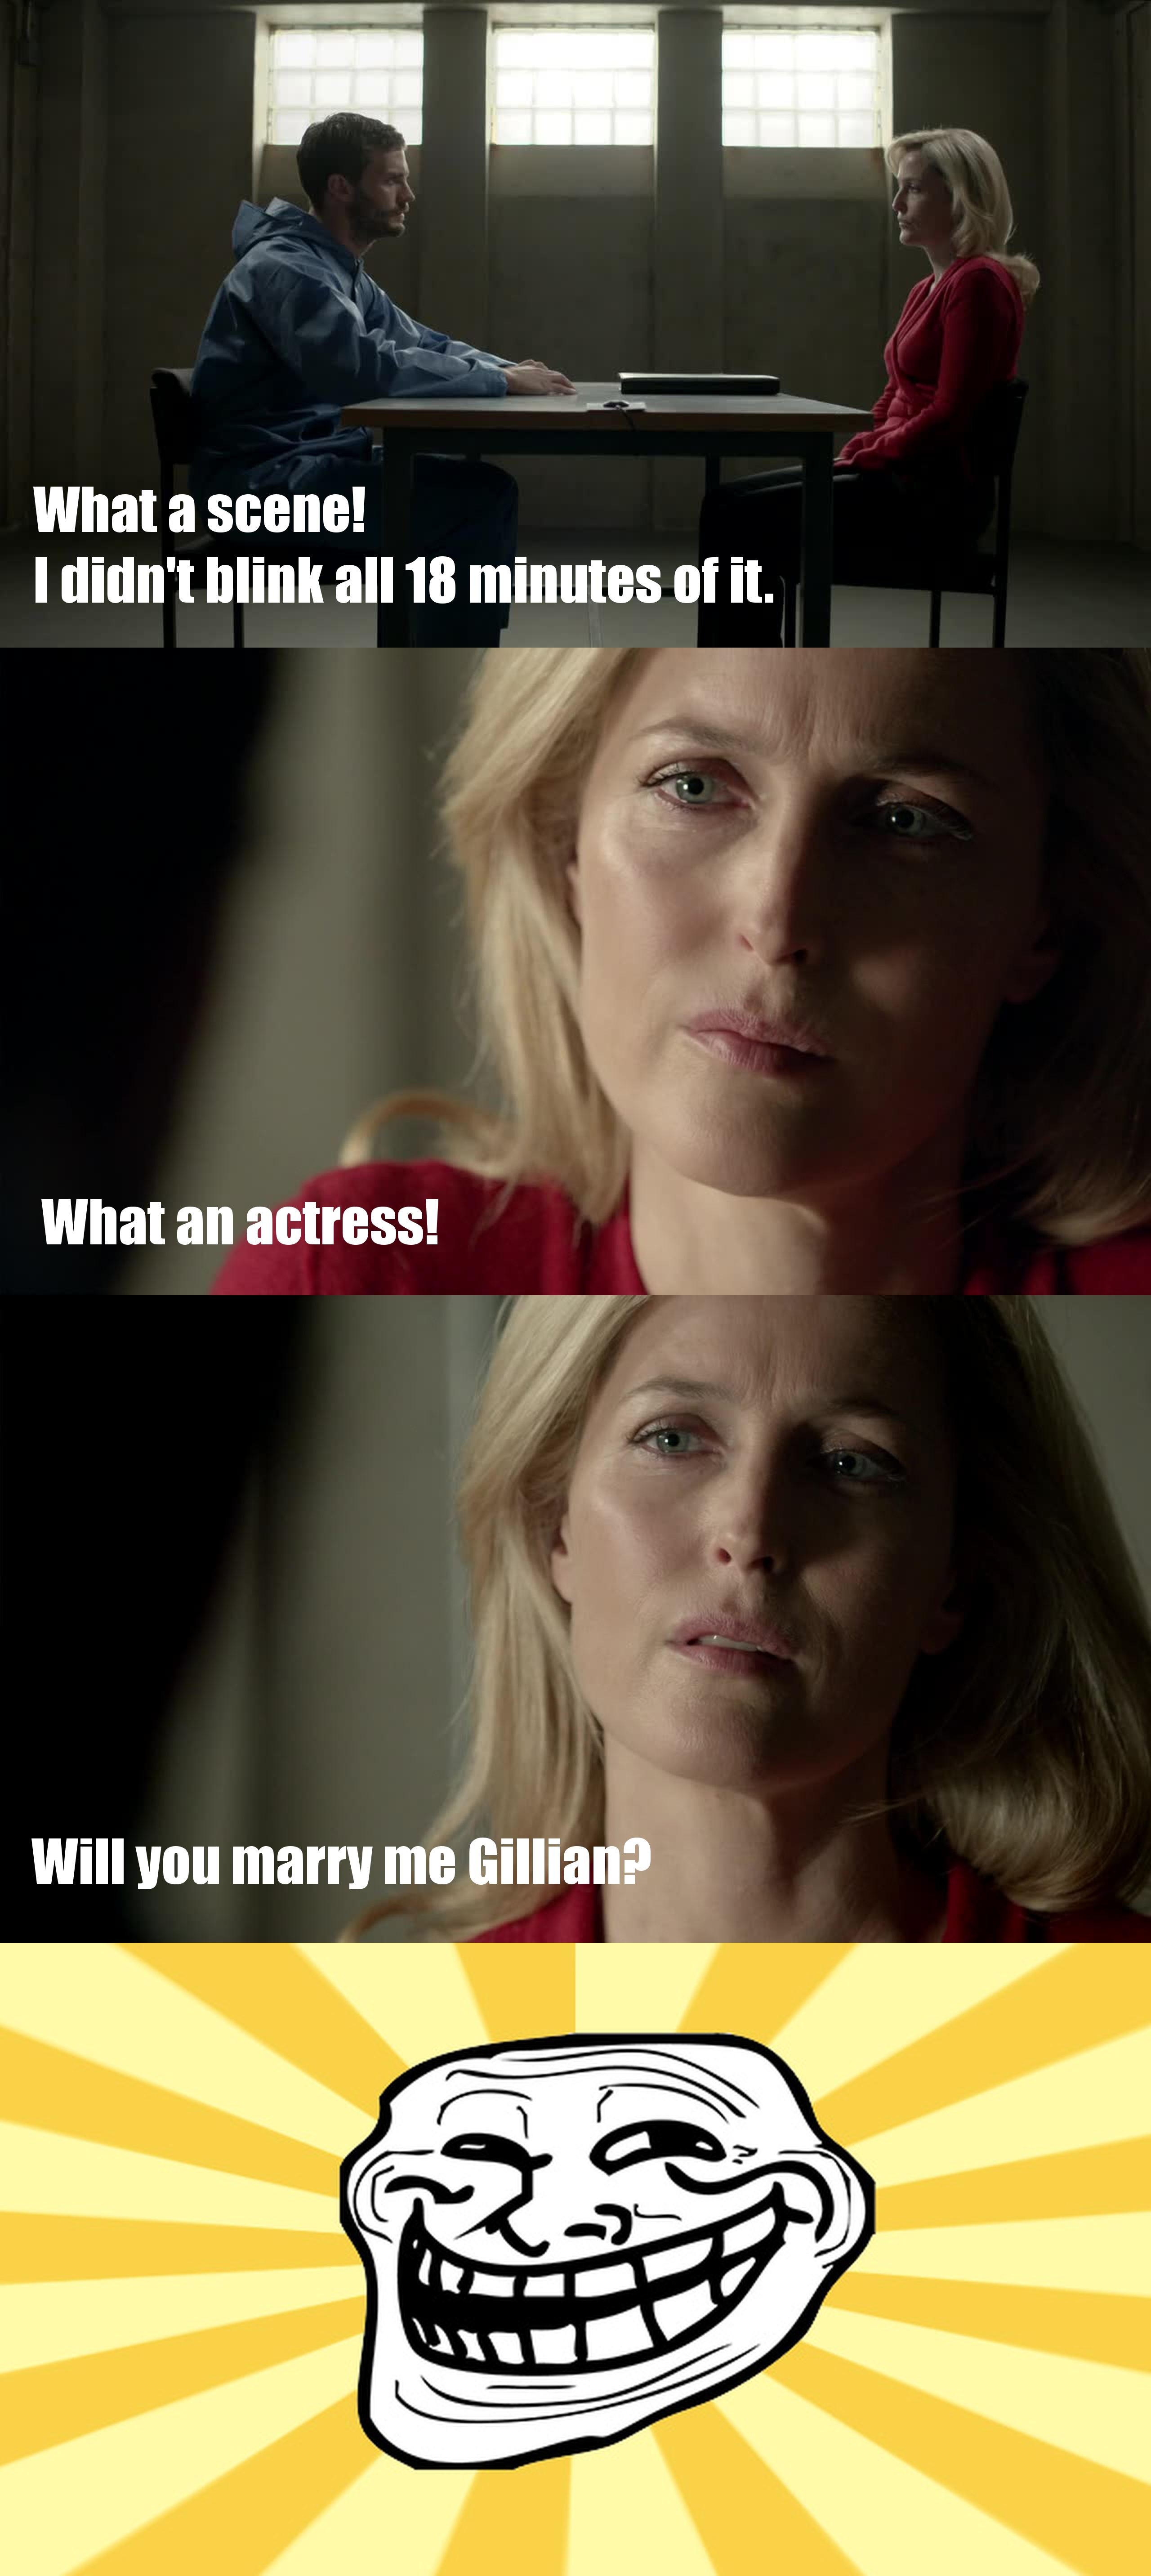 A lot of girls here are crazy for Paul, and actually cheer for him, but not me. I like guys, but oh my God, I'm in love with Stella/Gillian! The way she talks, the way she walks, the way she deals with everything... I can't get enough of her.   And what a show! The questioning scene and the final scene where superb... I was holding my breath the whole time.   I can't wait for the 3rd and final season! I've just finished the 2nd, and I miss it already.